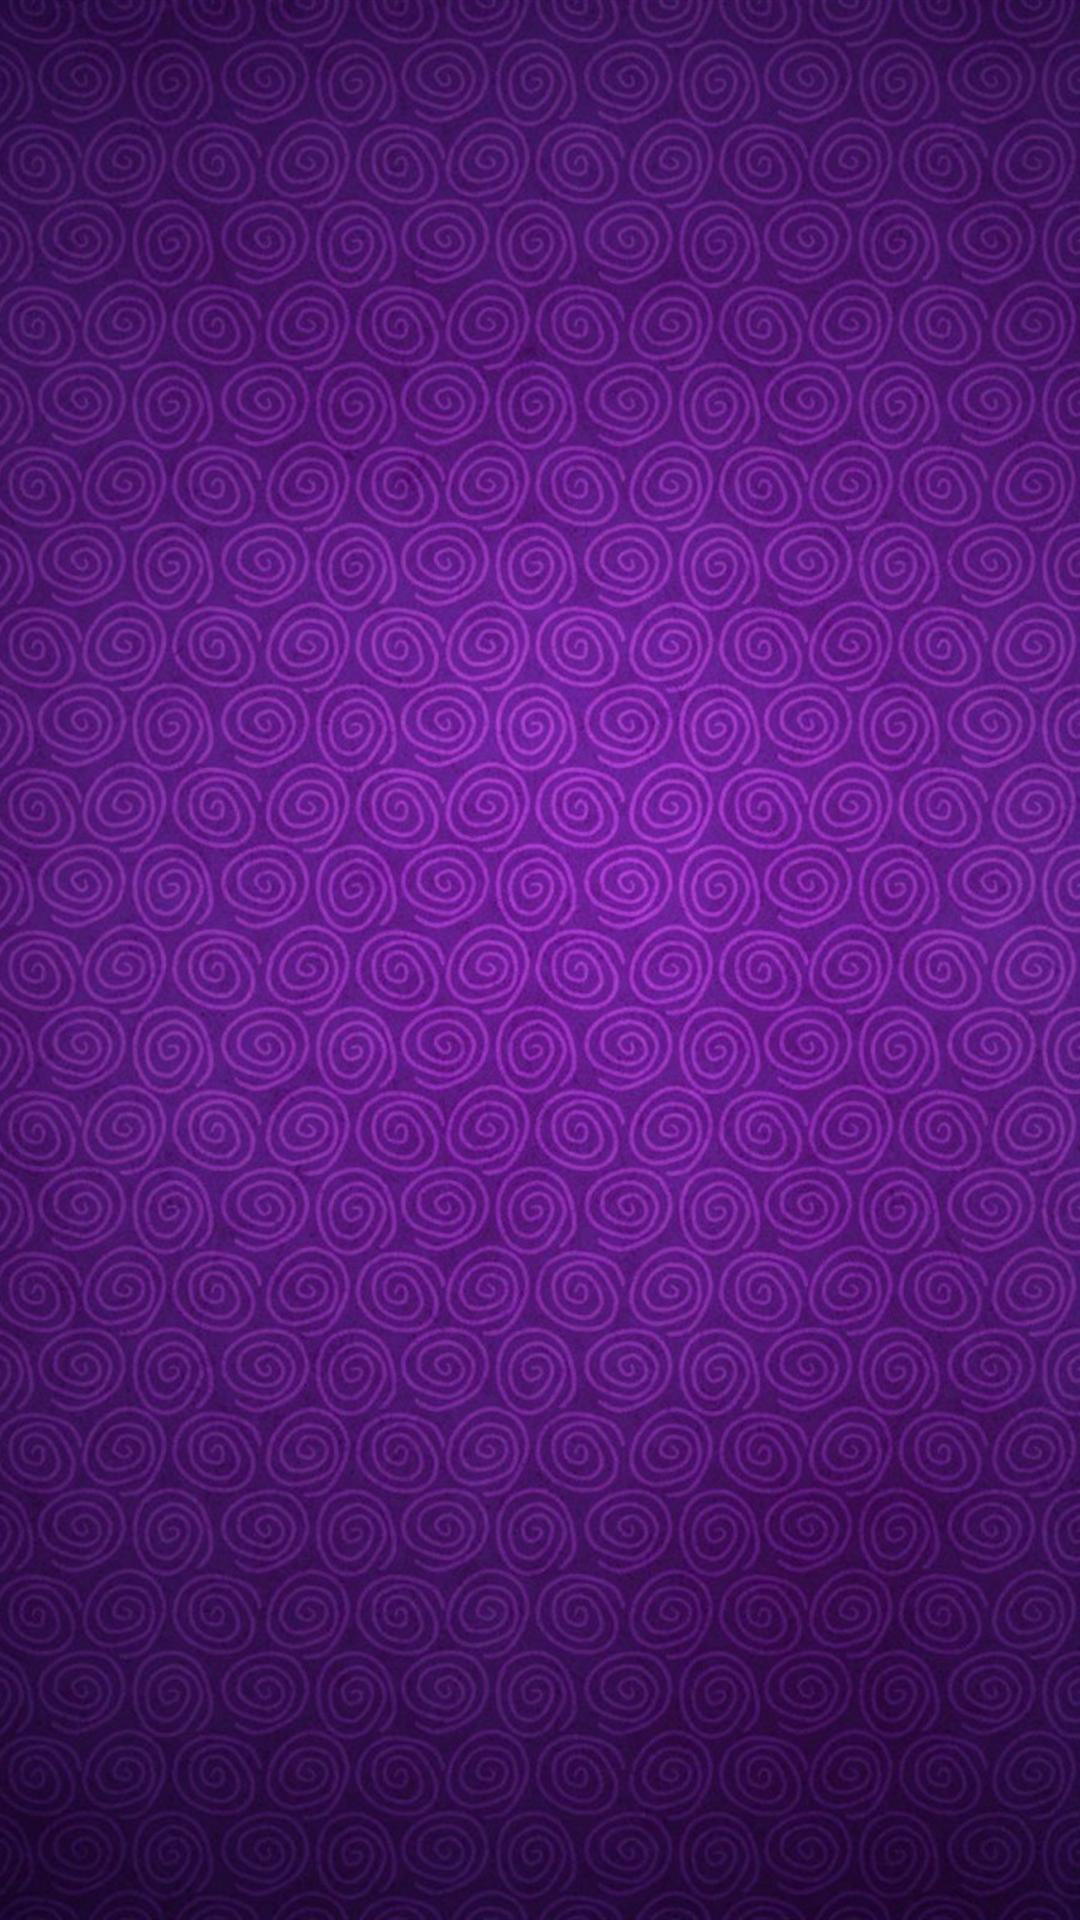 Wallpaper iphone violet - Download Spinning Twisting Dark Purple Wallpapers For Iphone 6 Plus